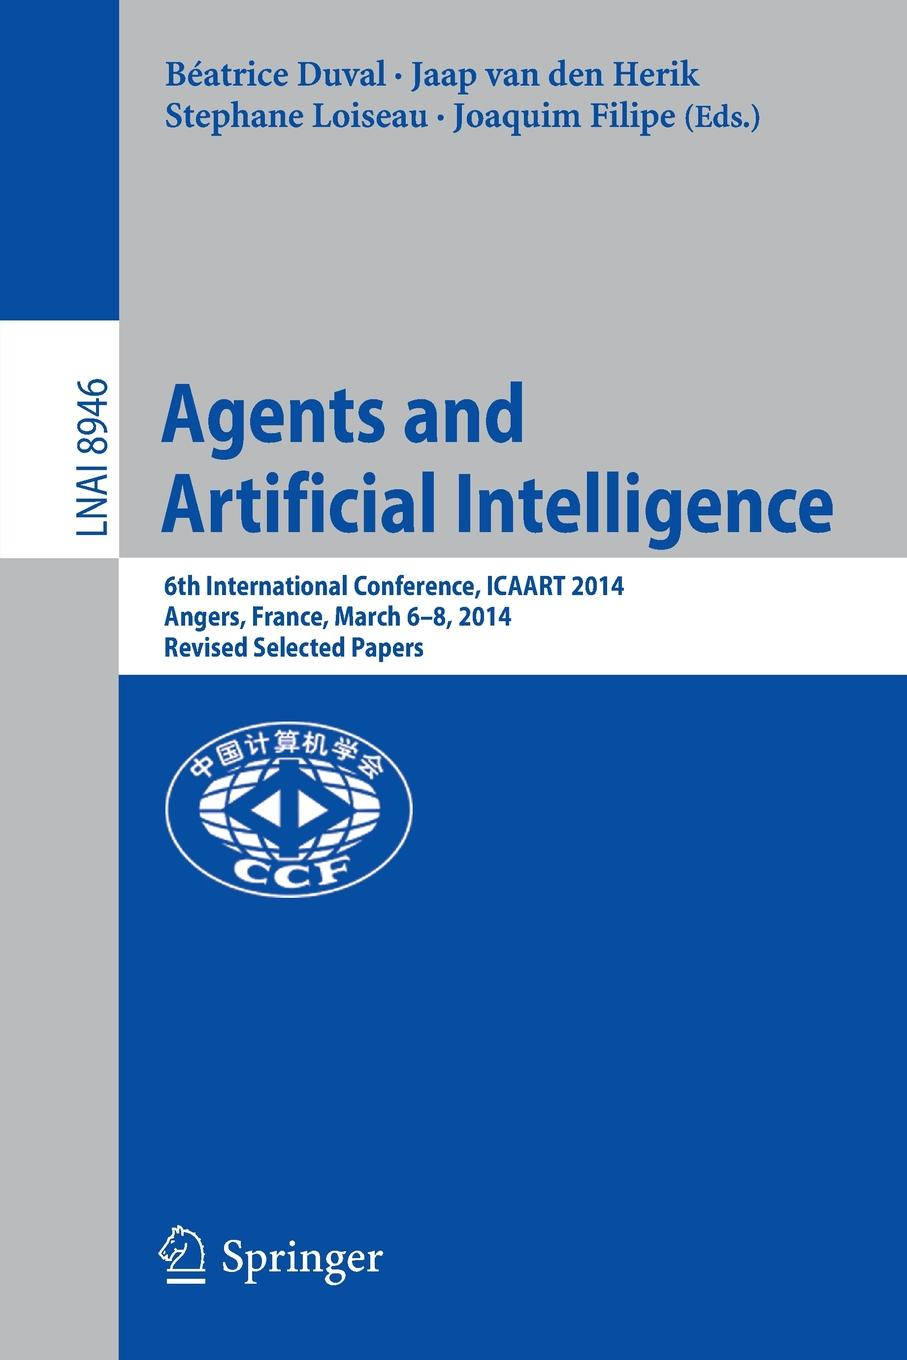 Agents and Artificial Intelligence. 6th International Conference, ICAART 2014, Angers, France, March 6-8, 2014, Revised Selected Papers sm caen angers sco